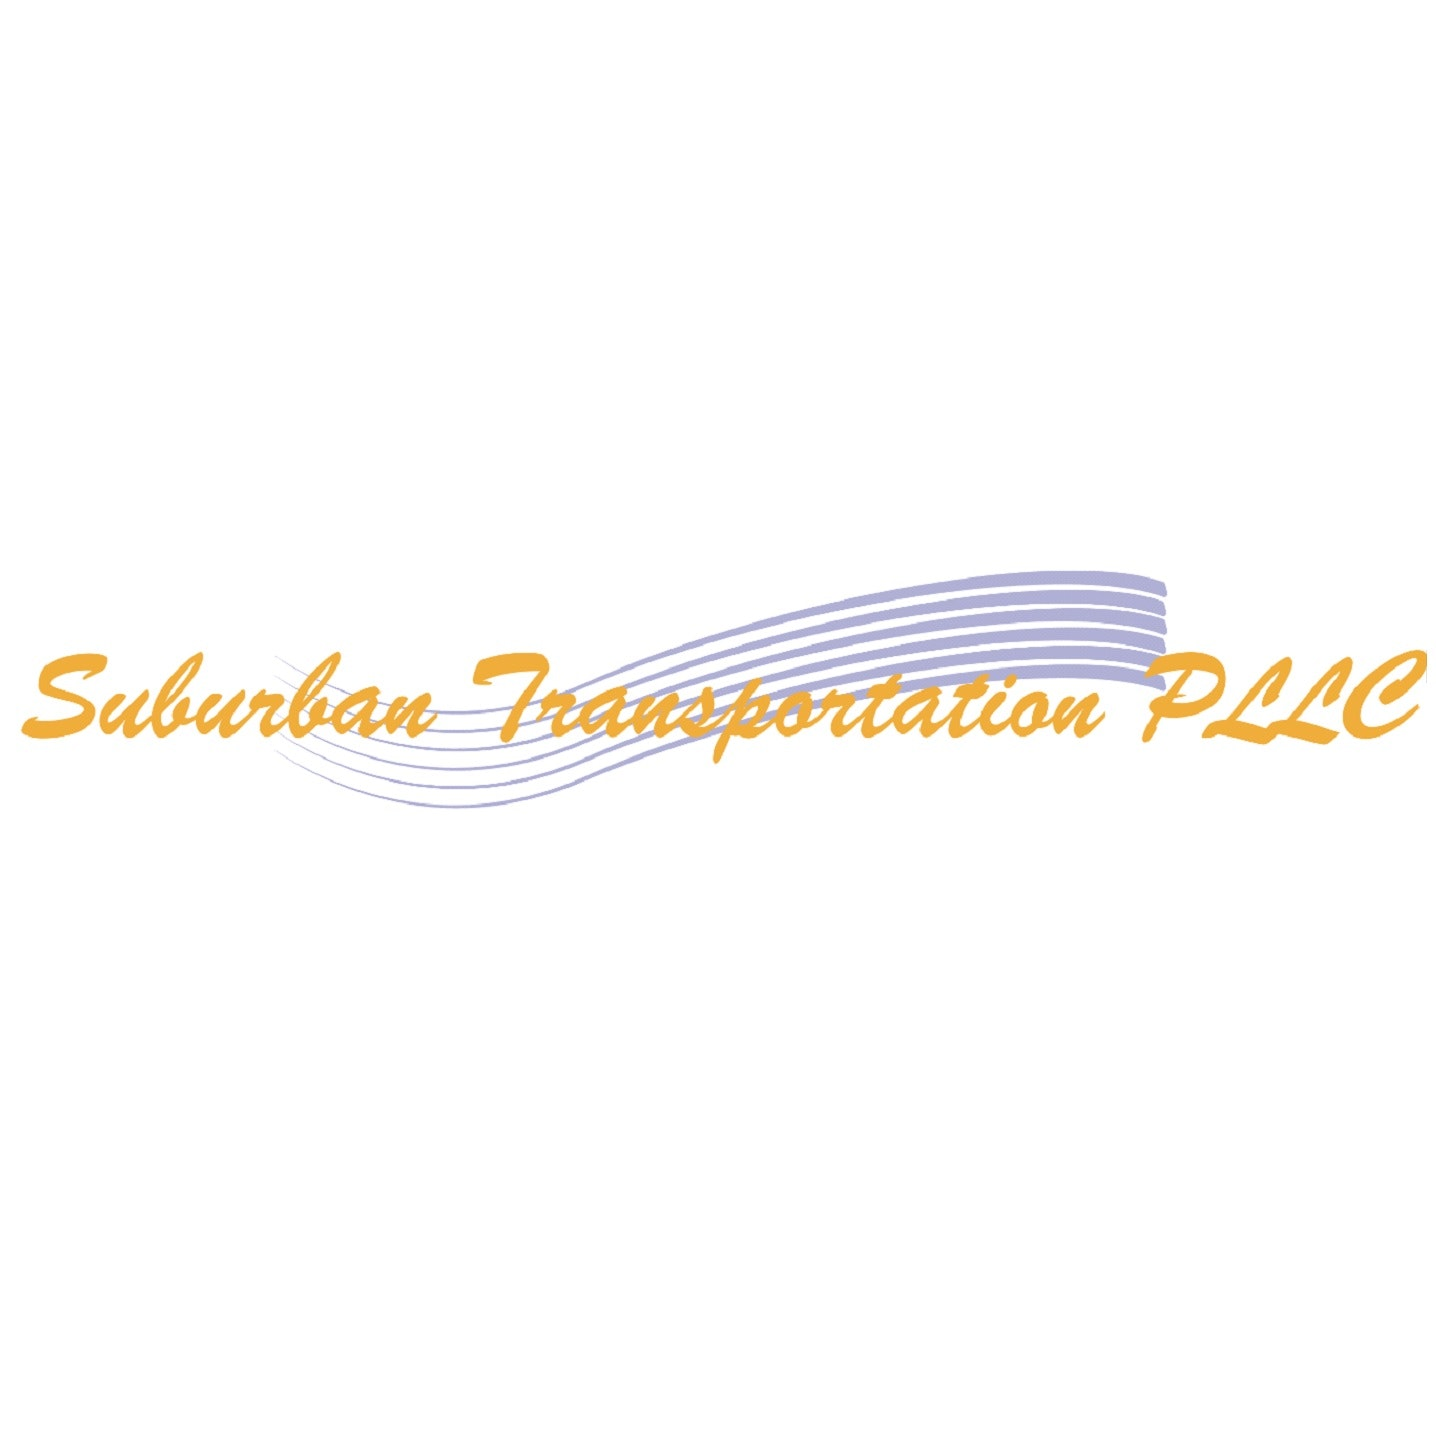 Suburban Transportation PLLC